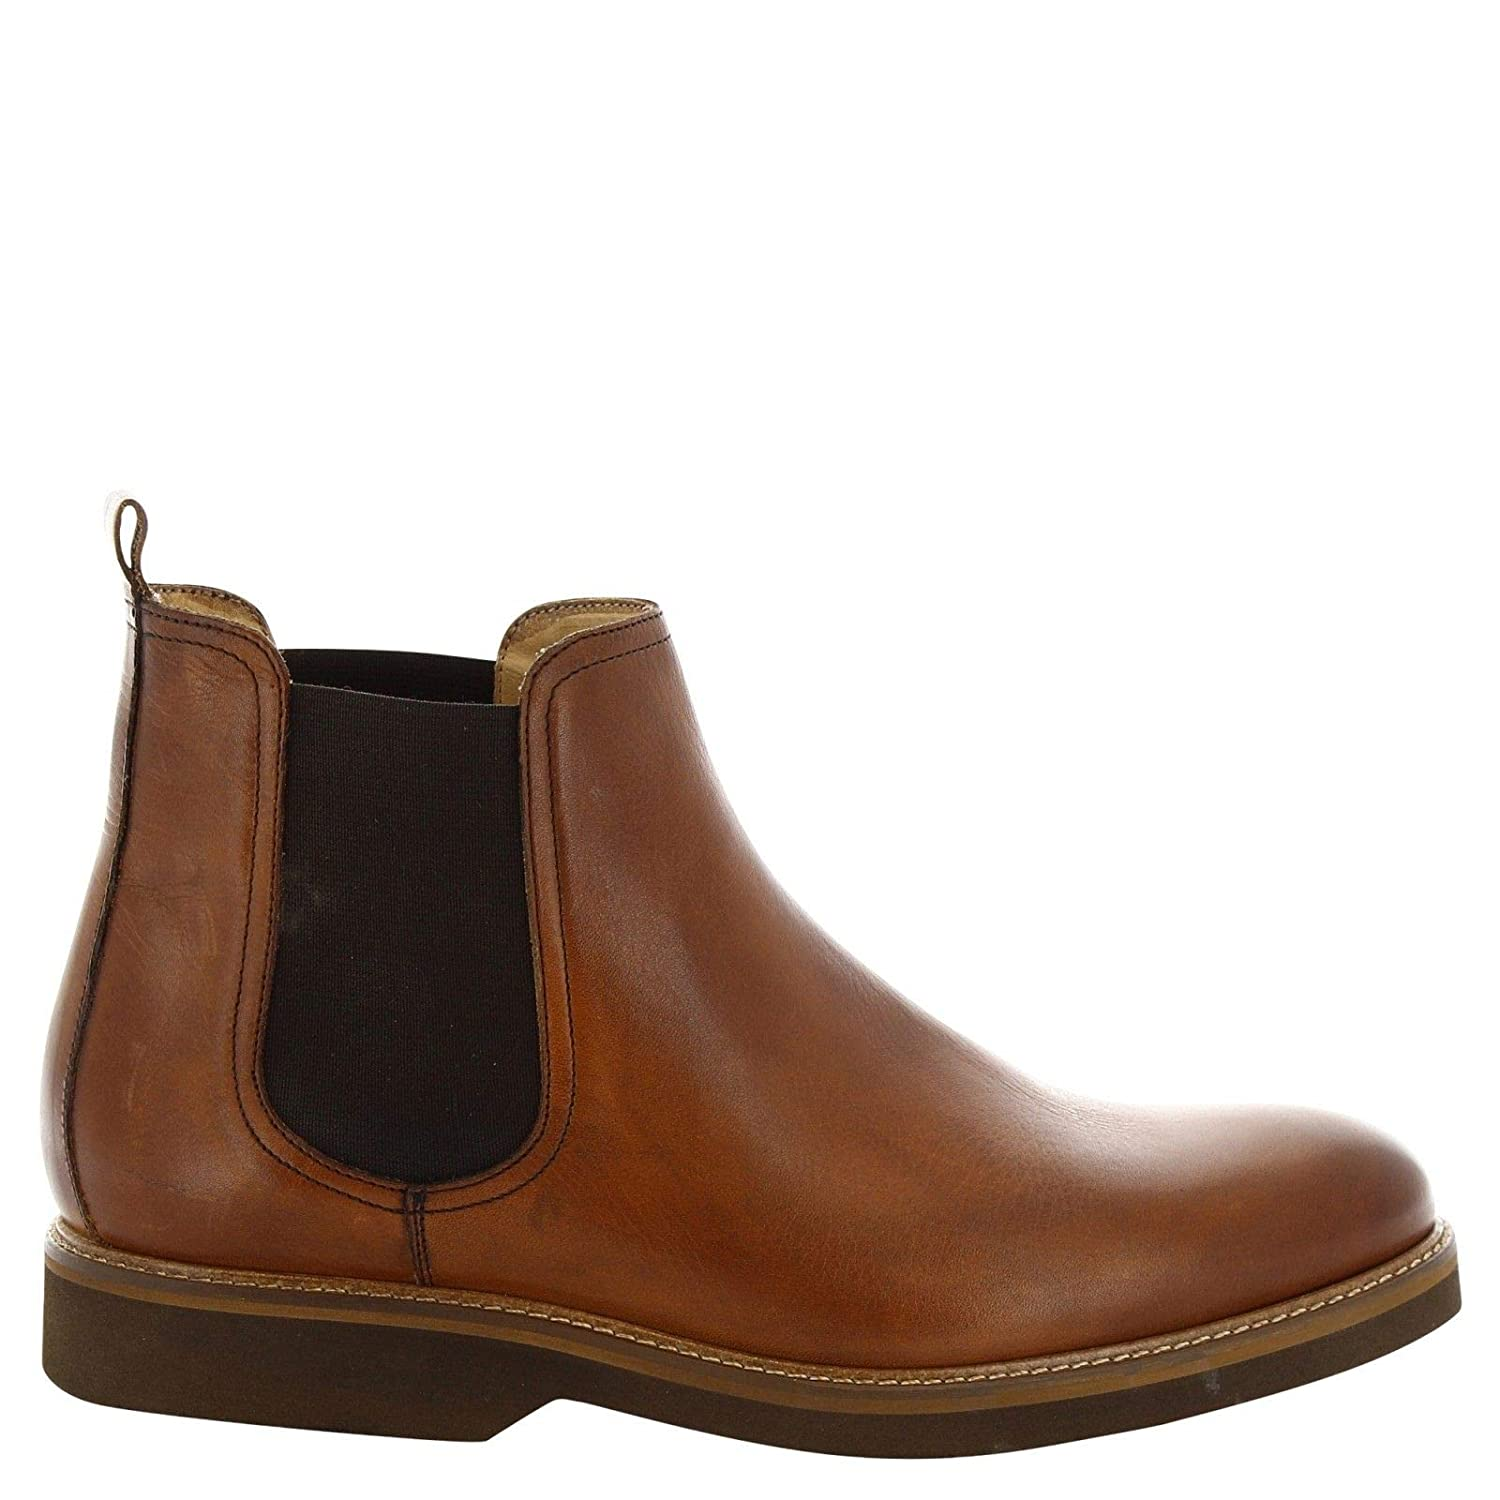 LEONARDO SHOES Mens 07235TAN Brown Leather Ankle Boots